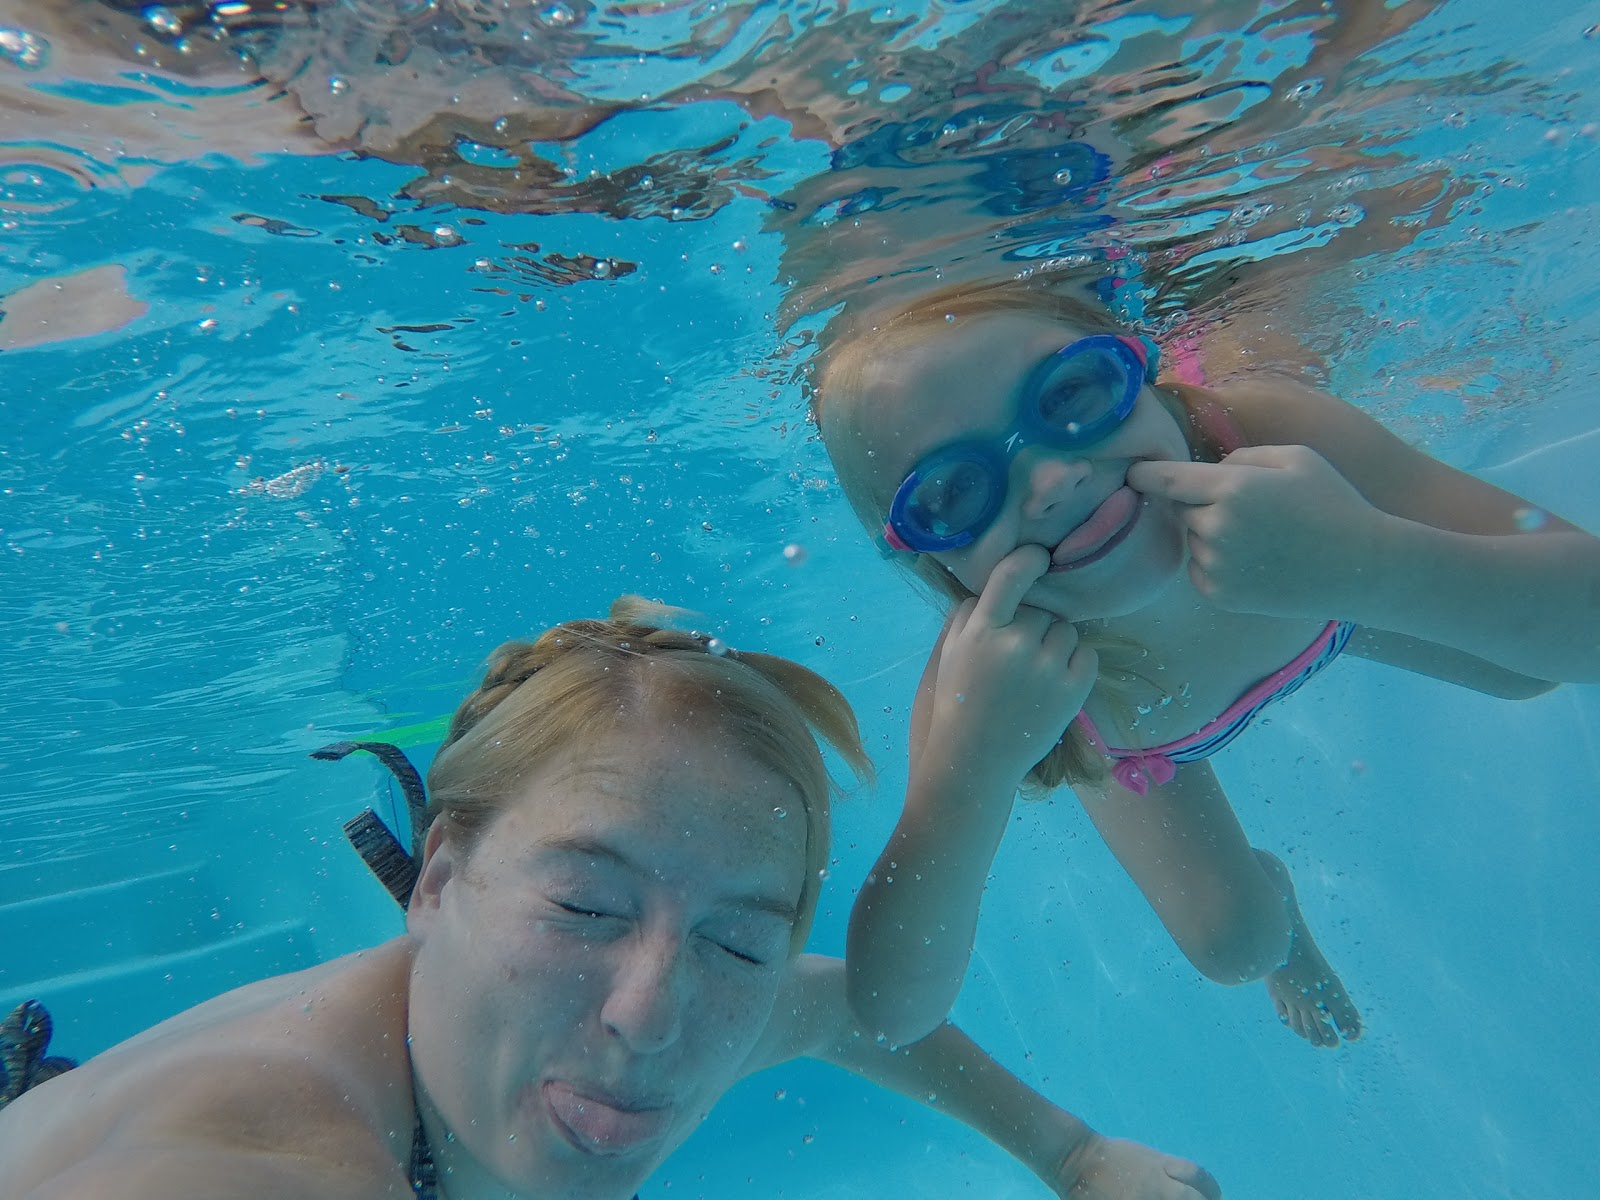 Underwater photograph of my big girl and me pulling faces in a swimming pool